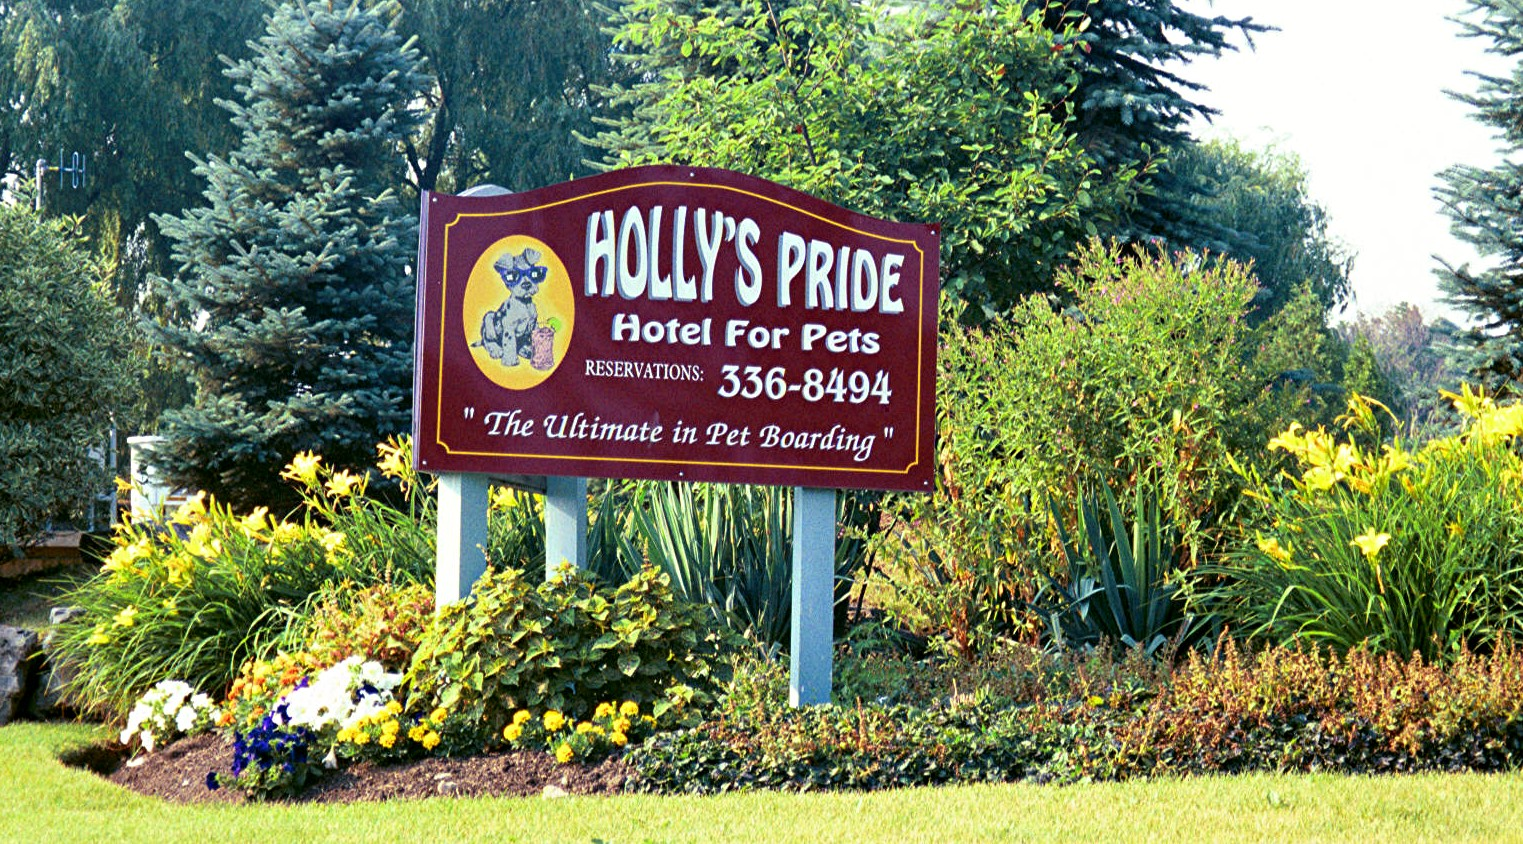 Holly's Pride - The Ultimate Pet Boarding Burlington Location